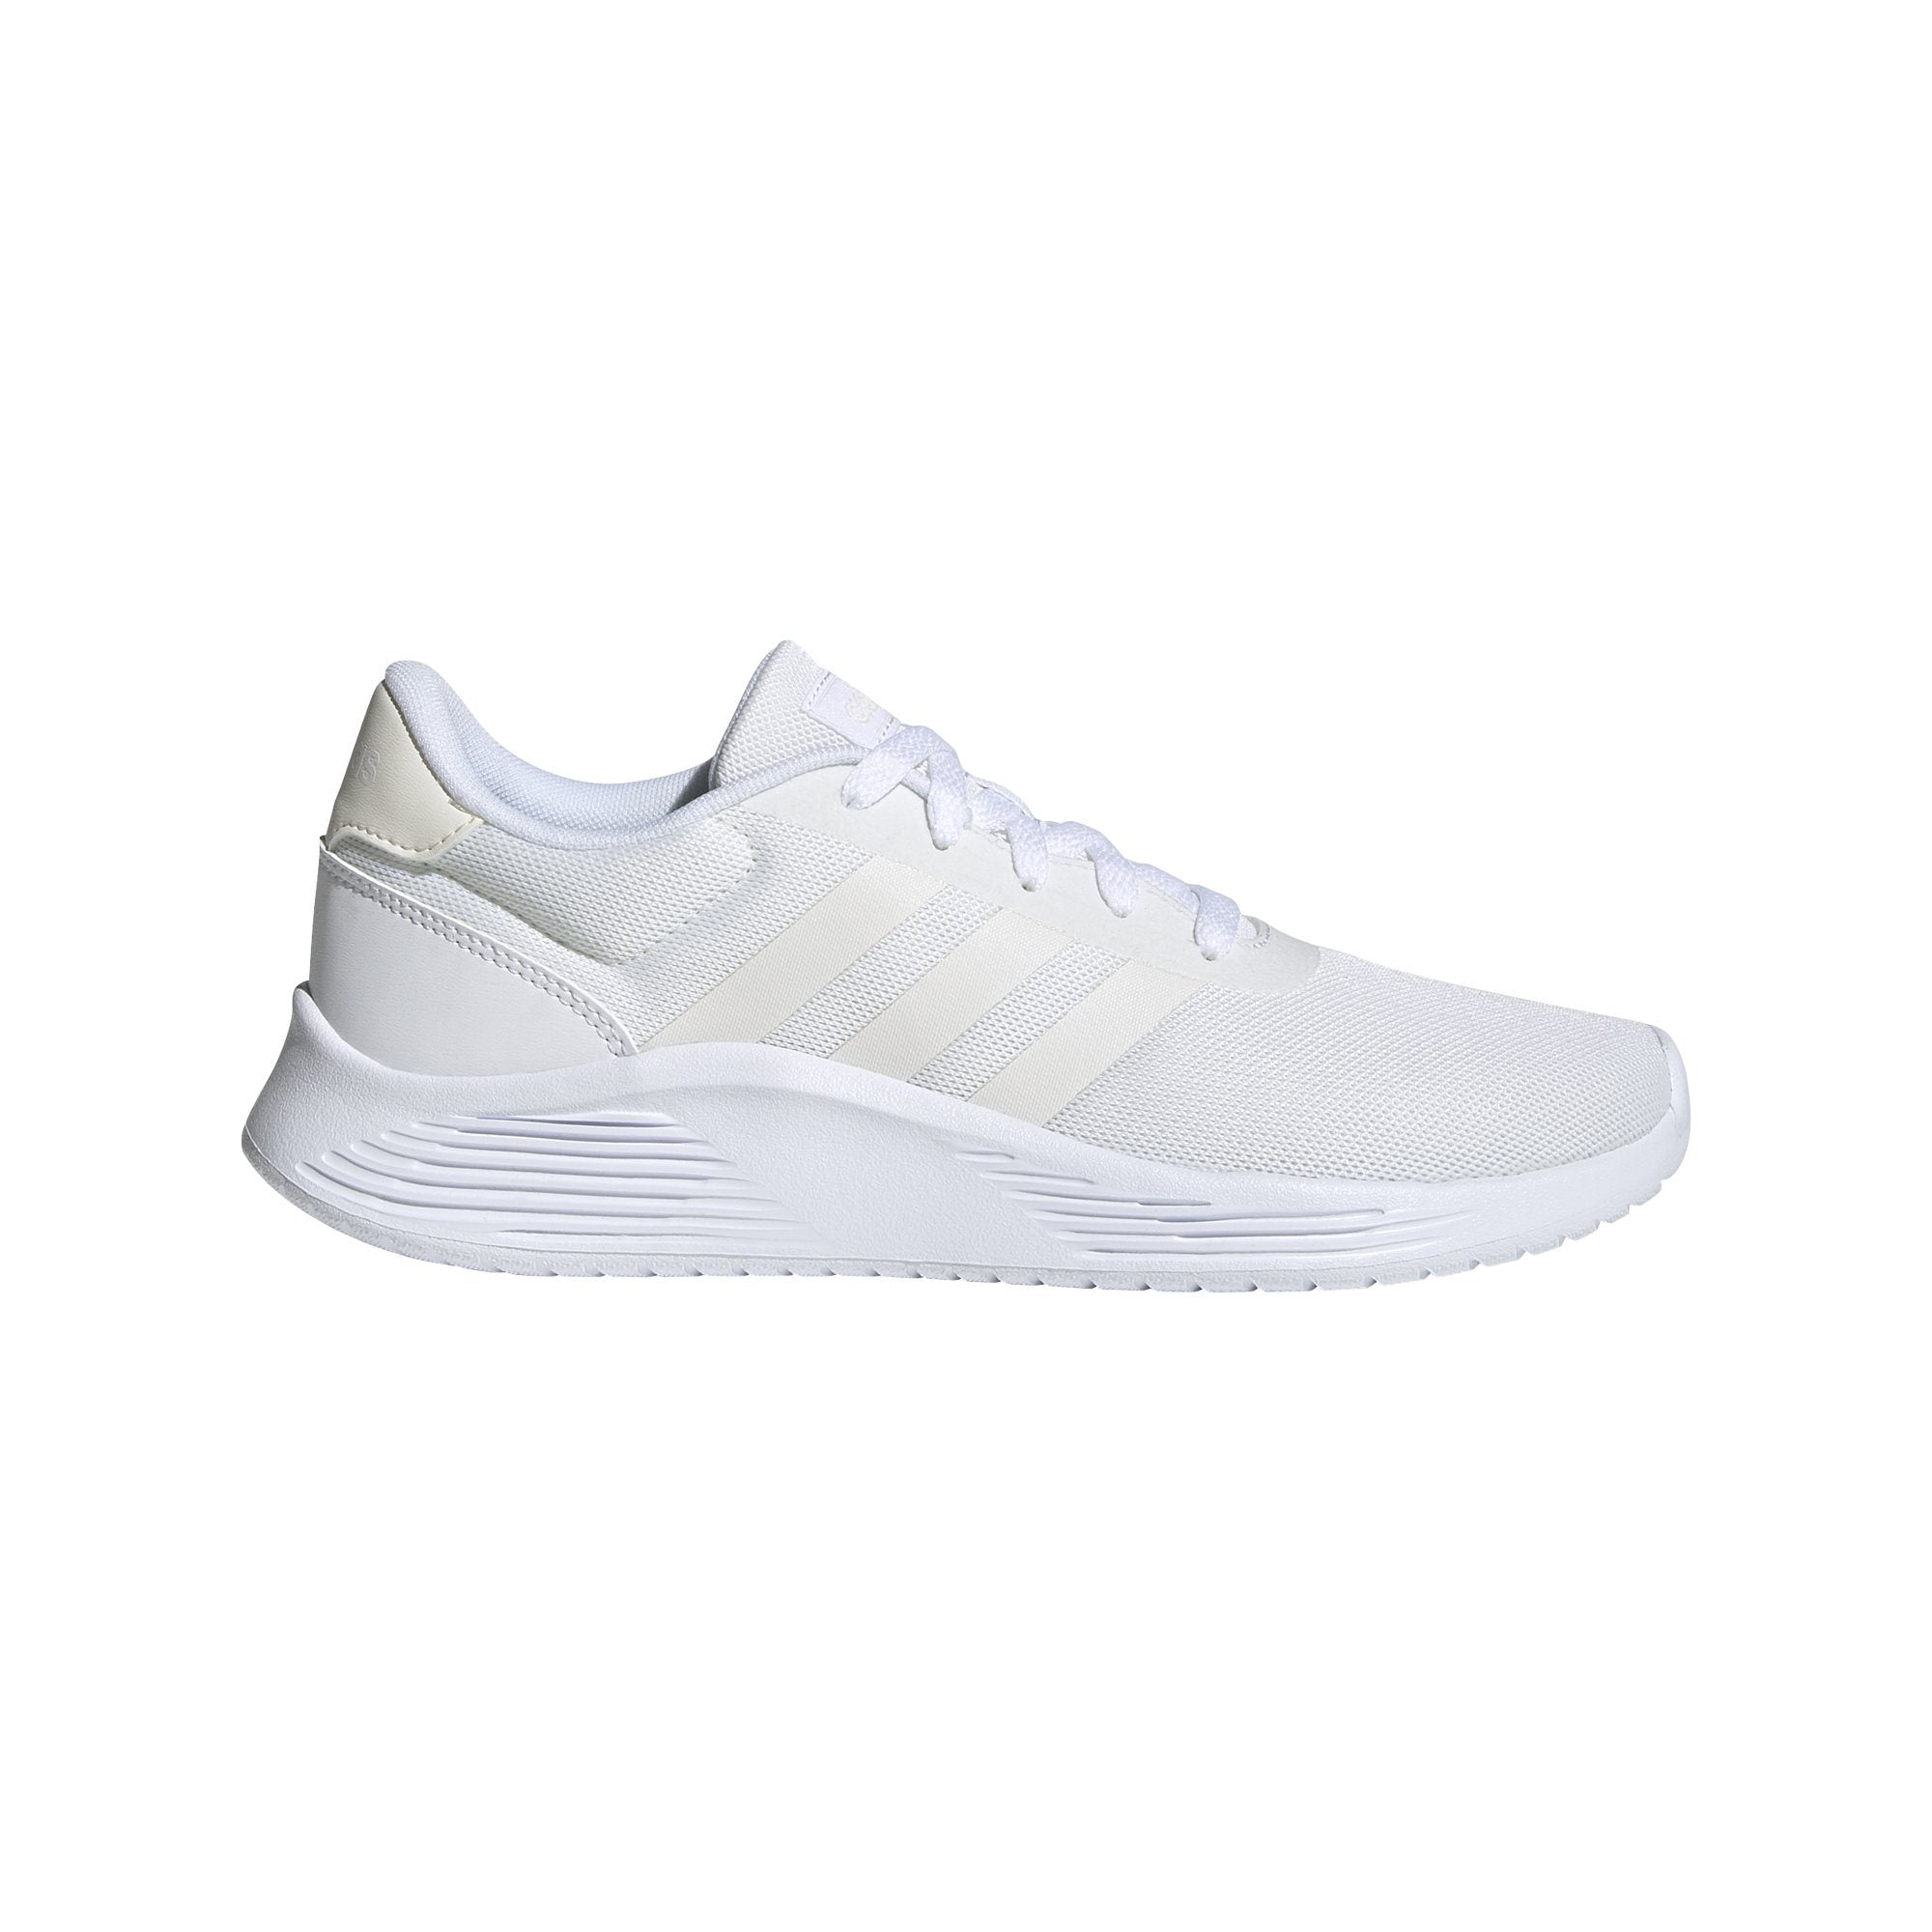 Adidas Women's Lite Racer 2.0 Shoes - Ftwr White/Chalk White/Core Black